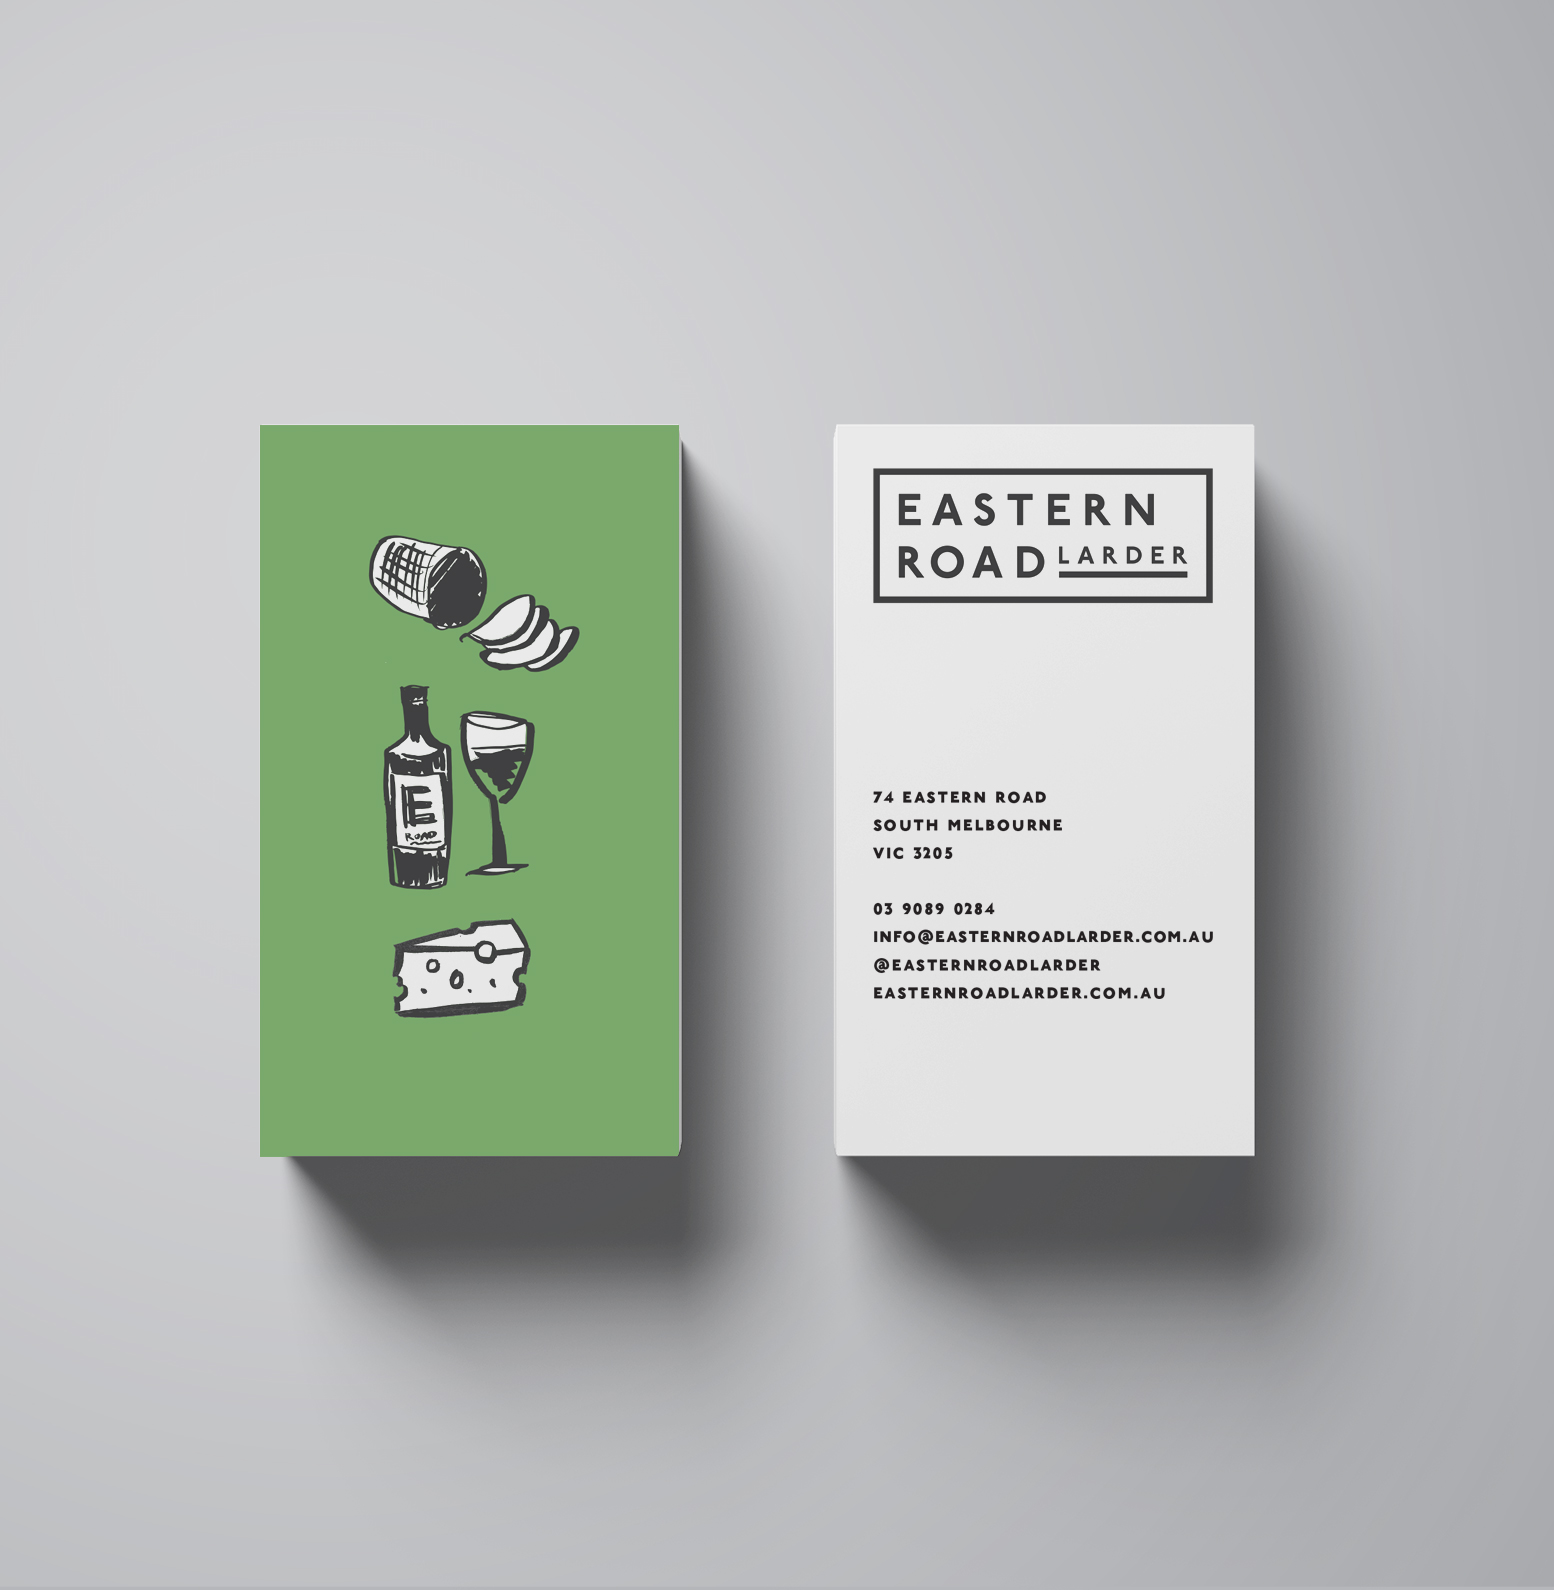 Studio-Mimi-Moon-Branding-&-design-Eastern-Road-Larder-Bcards